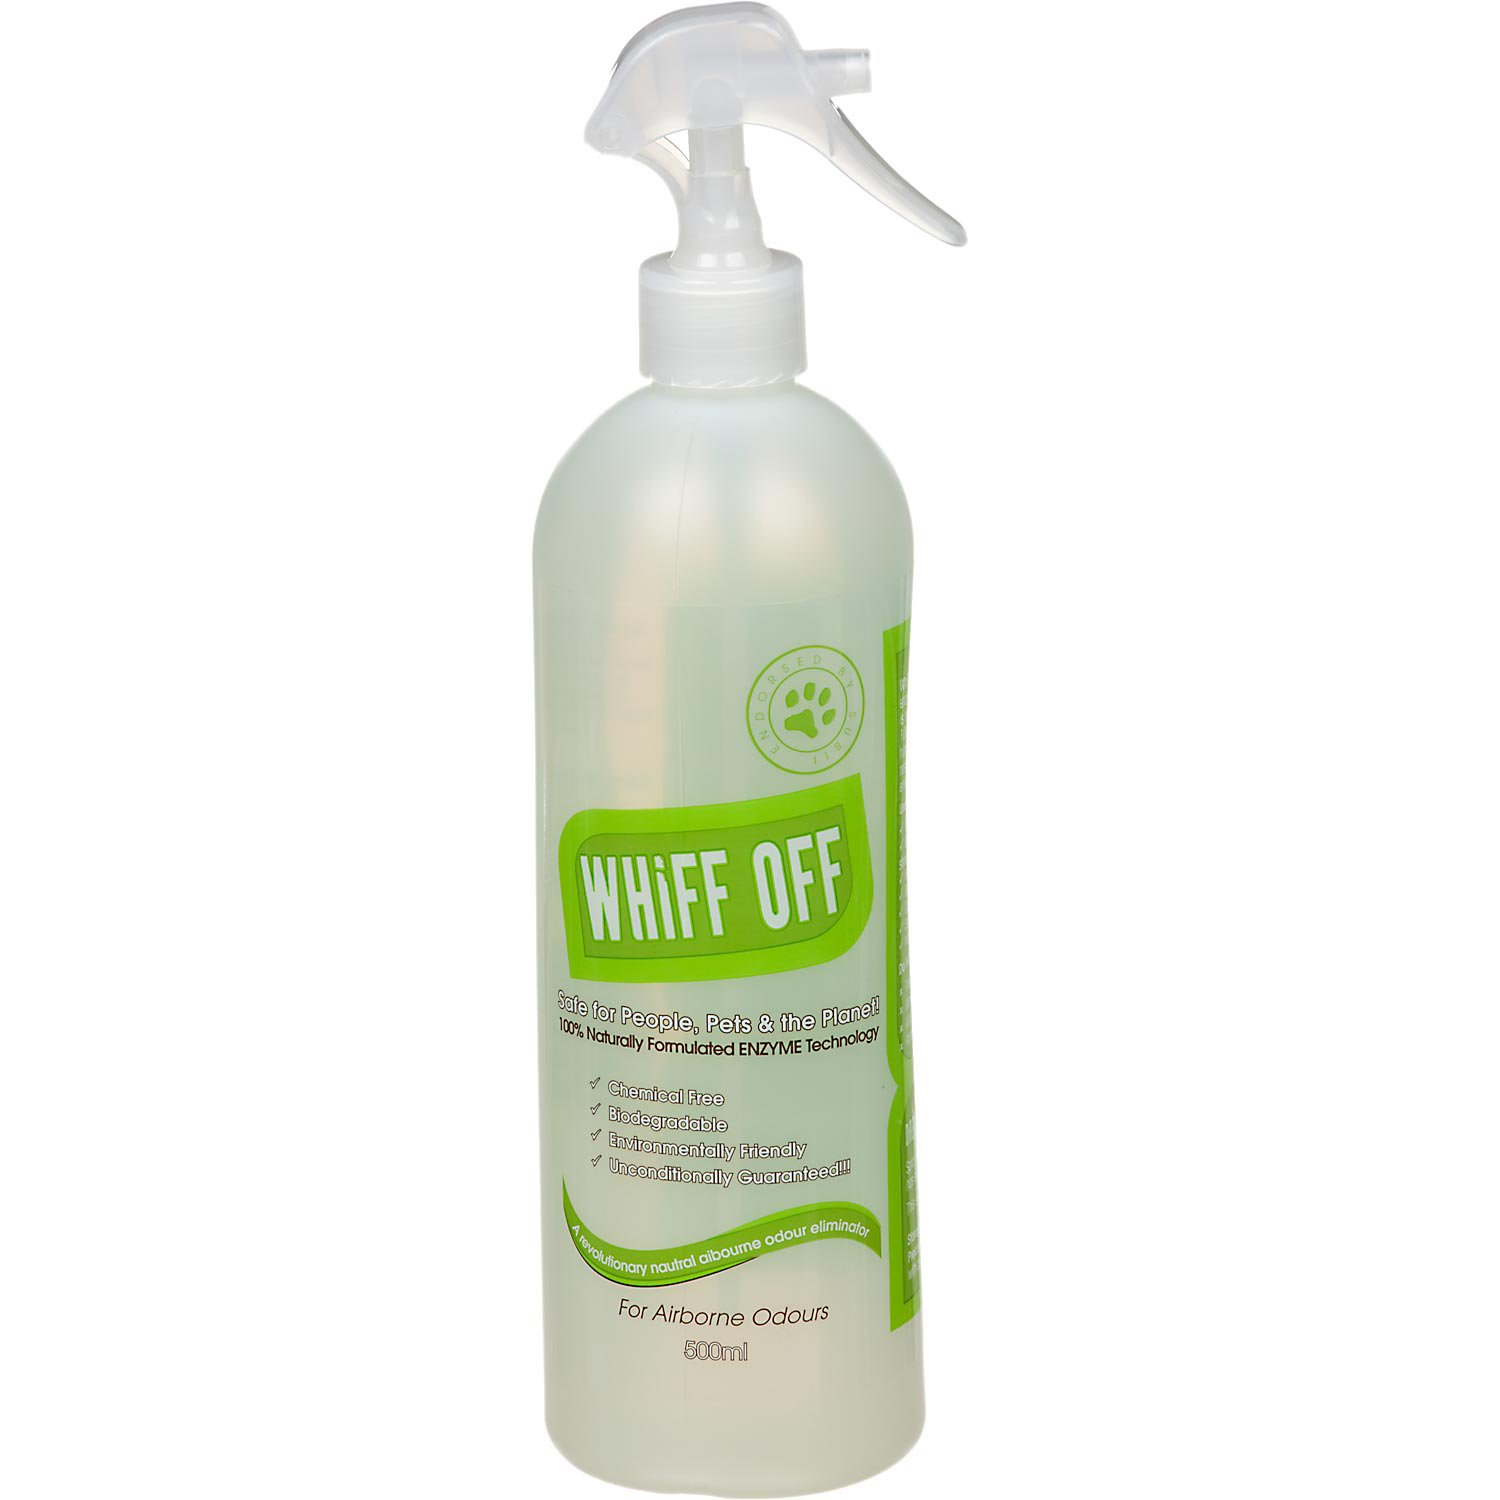 Whiff Off Natural Deodorizer and Deterrent